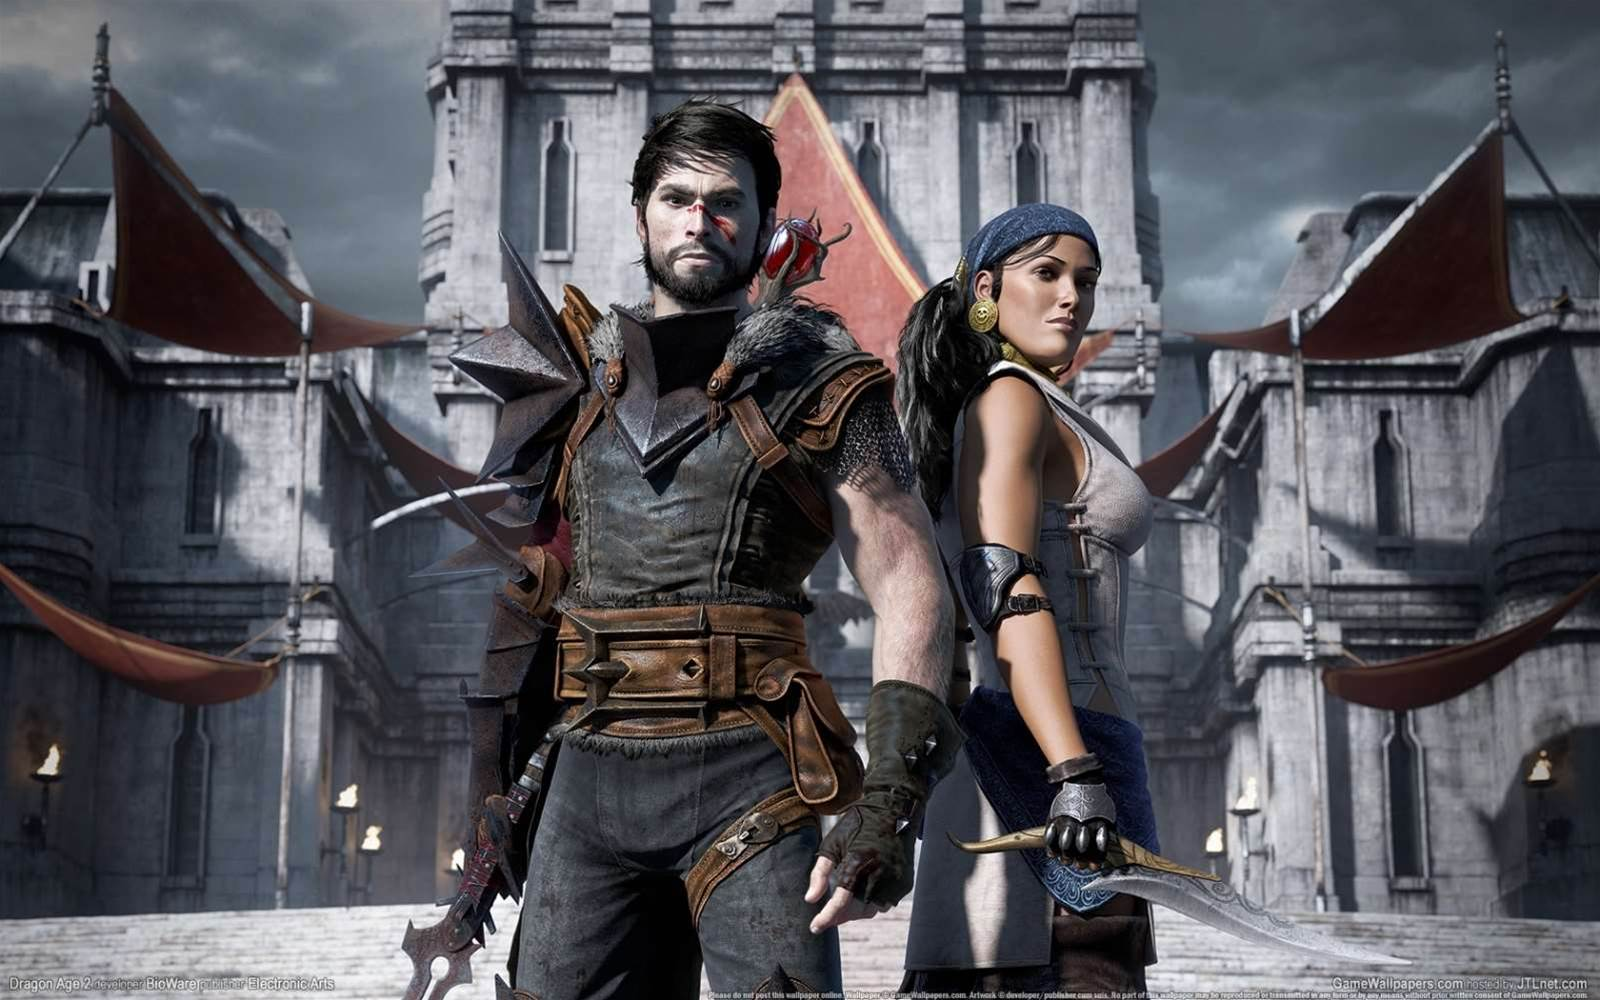 """<h2>Dragon Age II</h2> Don't get us wrong, Dragon Age II was a decent game, but it failed to match the legacy of its award-winning predecessor -- particularly if you were playing it on PC. Most of the RPG elements that made Dragon Age: Origins great were stripped out in favour of linear console-friendly action. The end result is a surprisingly lightweight adventure that shares little of its ancestor's magic. (Thankfully, <b><a href=""""http://www.pcauthority.com.au/Gallery/280098,ten-reasons-to-buy-the-elder-scrolls-v-skyrim.aspx/1"""" target=""""_blank"""">The Elder Scrolls: Skyrim</a></b> helped fill the void for hardcore D&D fanatics.)"""